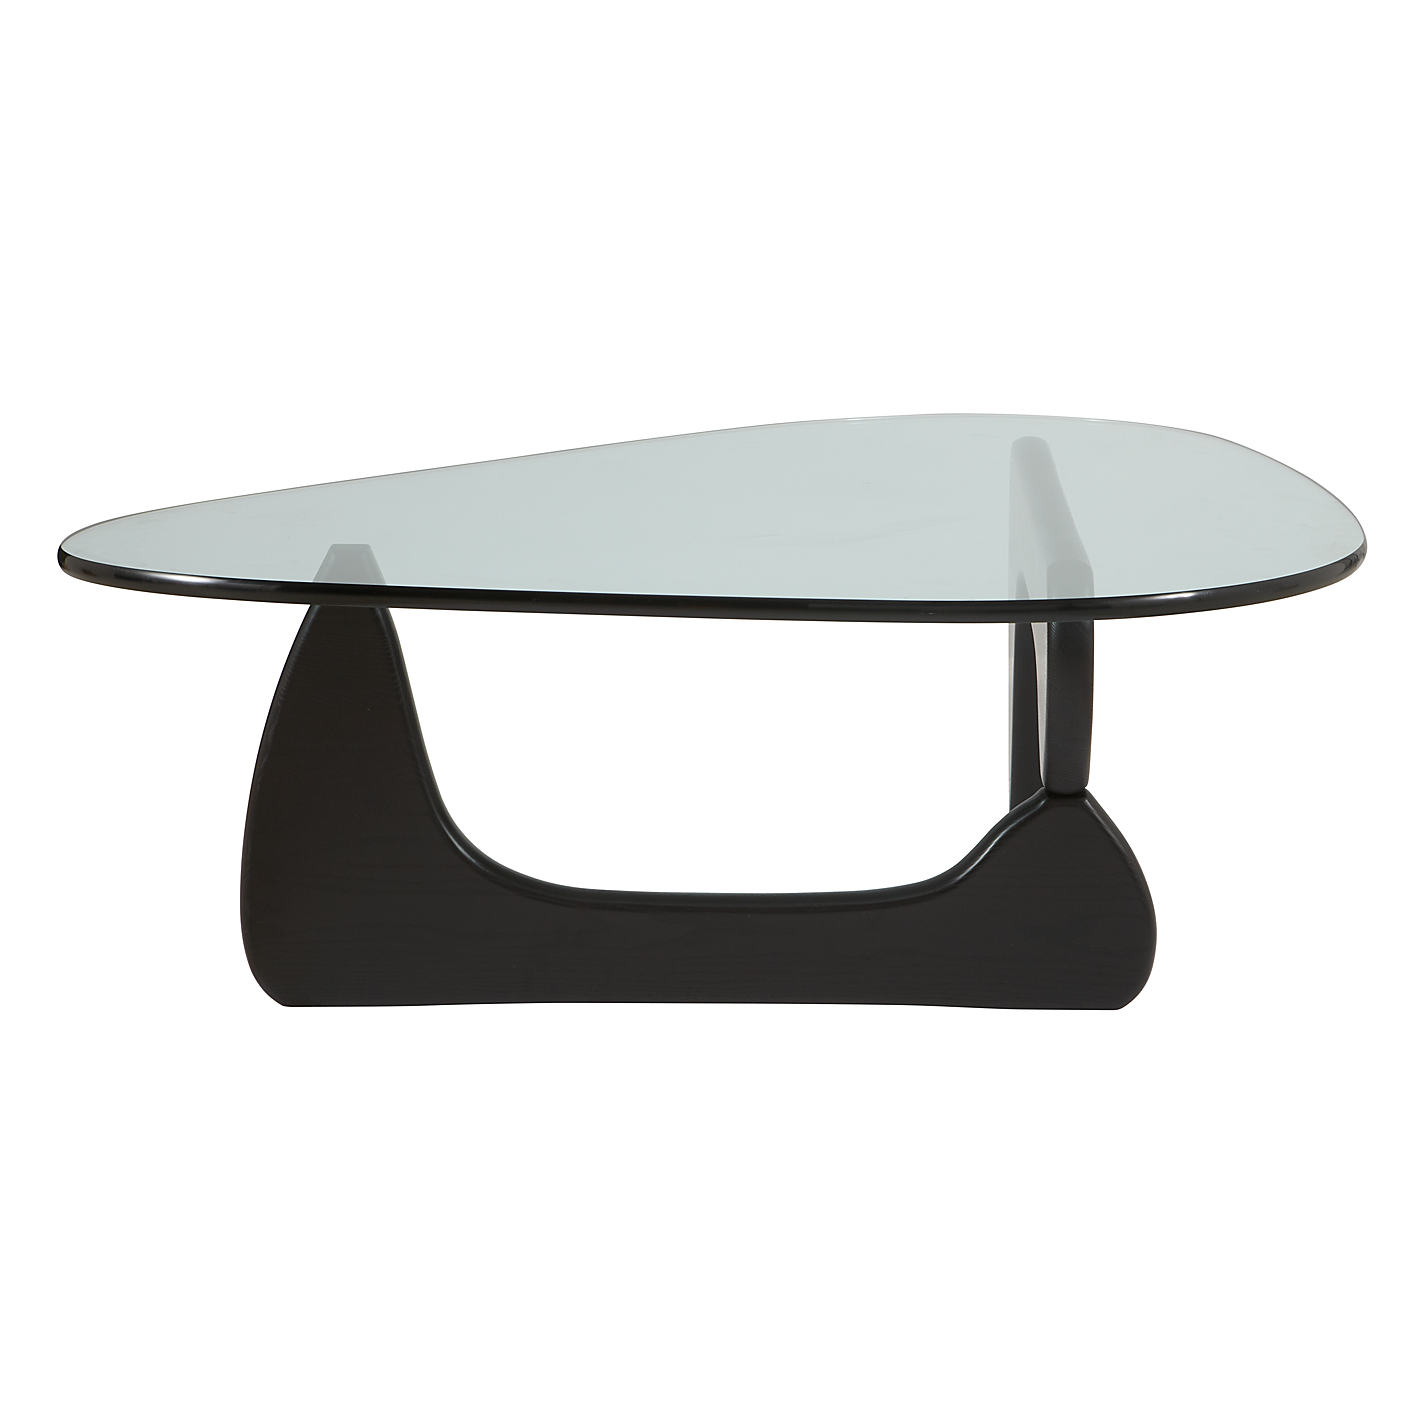 Buy Vitra Noguchi Coffee Table | John Lewis